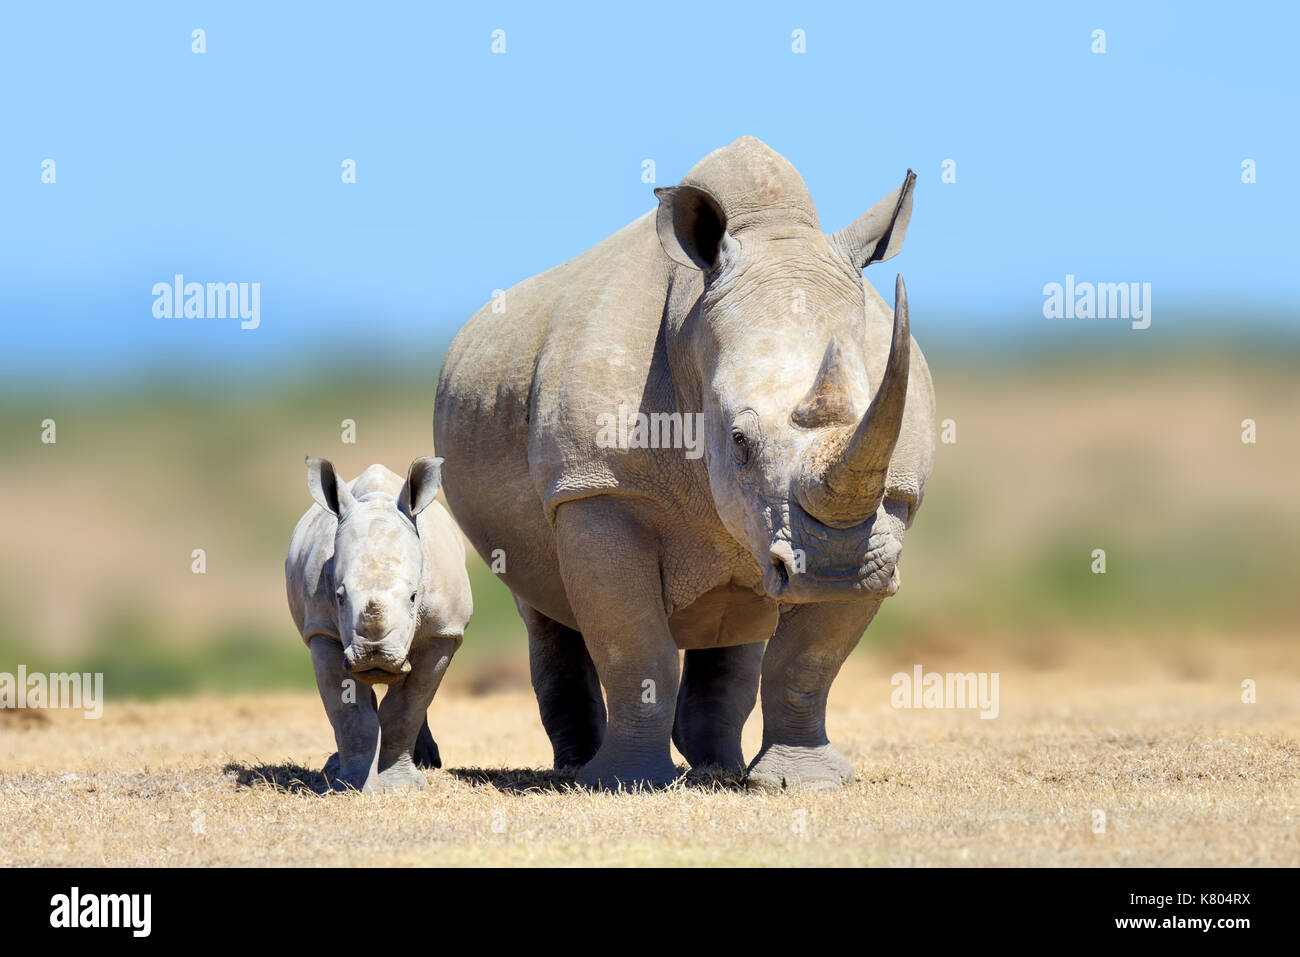 Rhinocéros blanc dans la nature de l'habitat, le Kenya, l'Afrique. la faune scène de la nature. grand animal de afrika Photo Stock